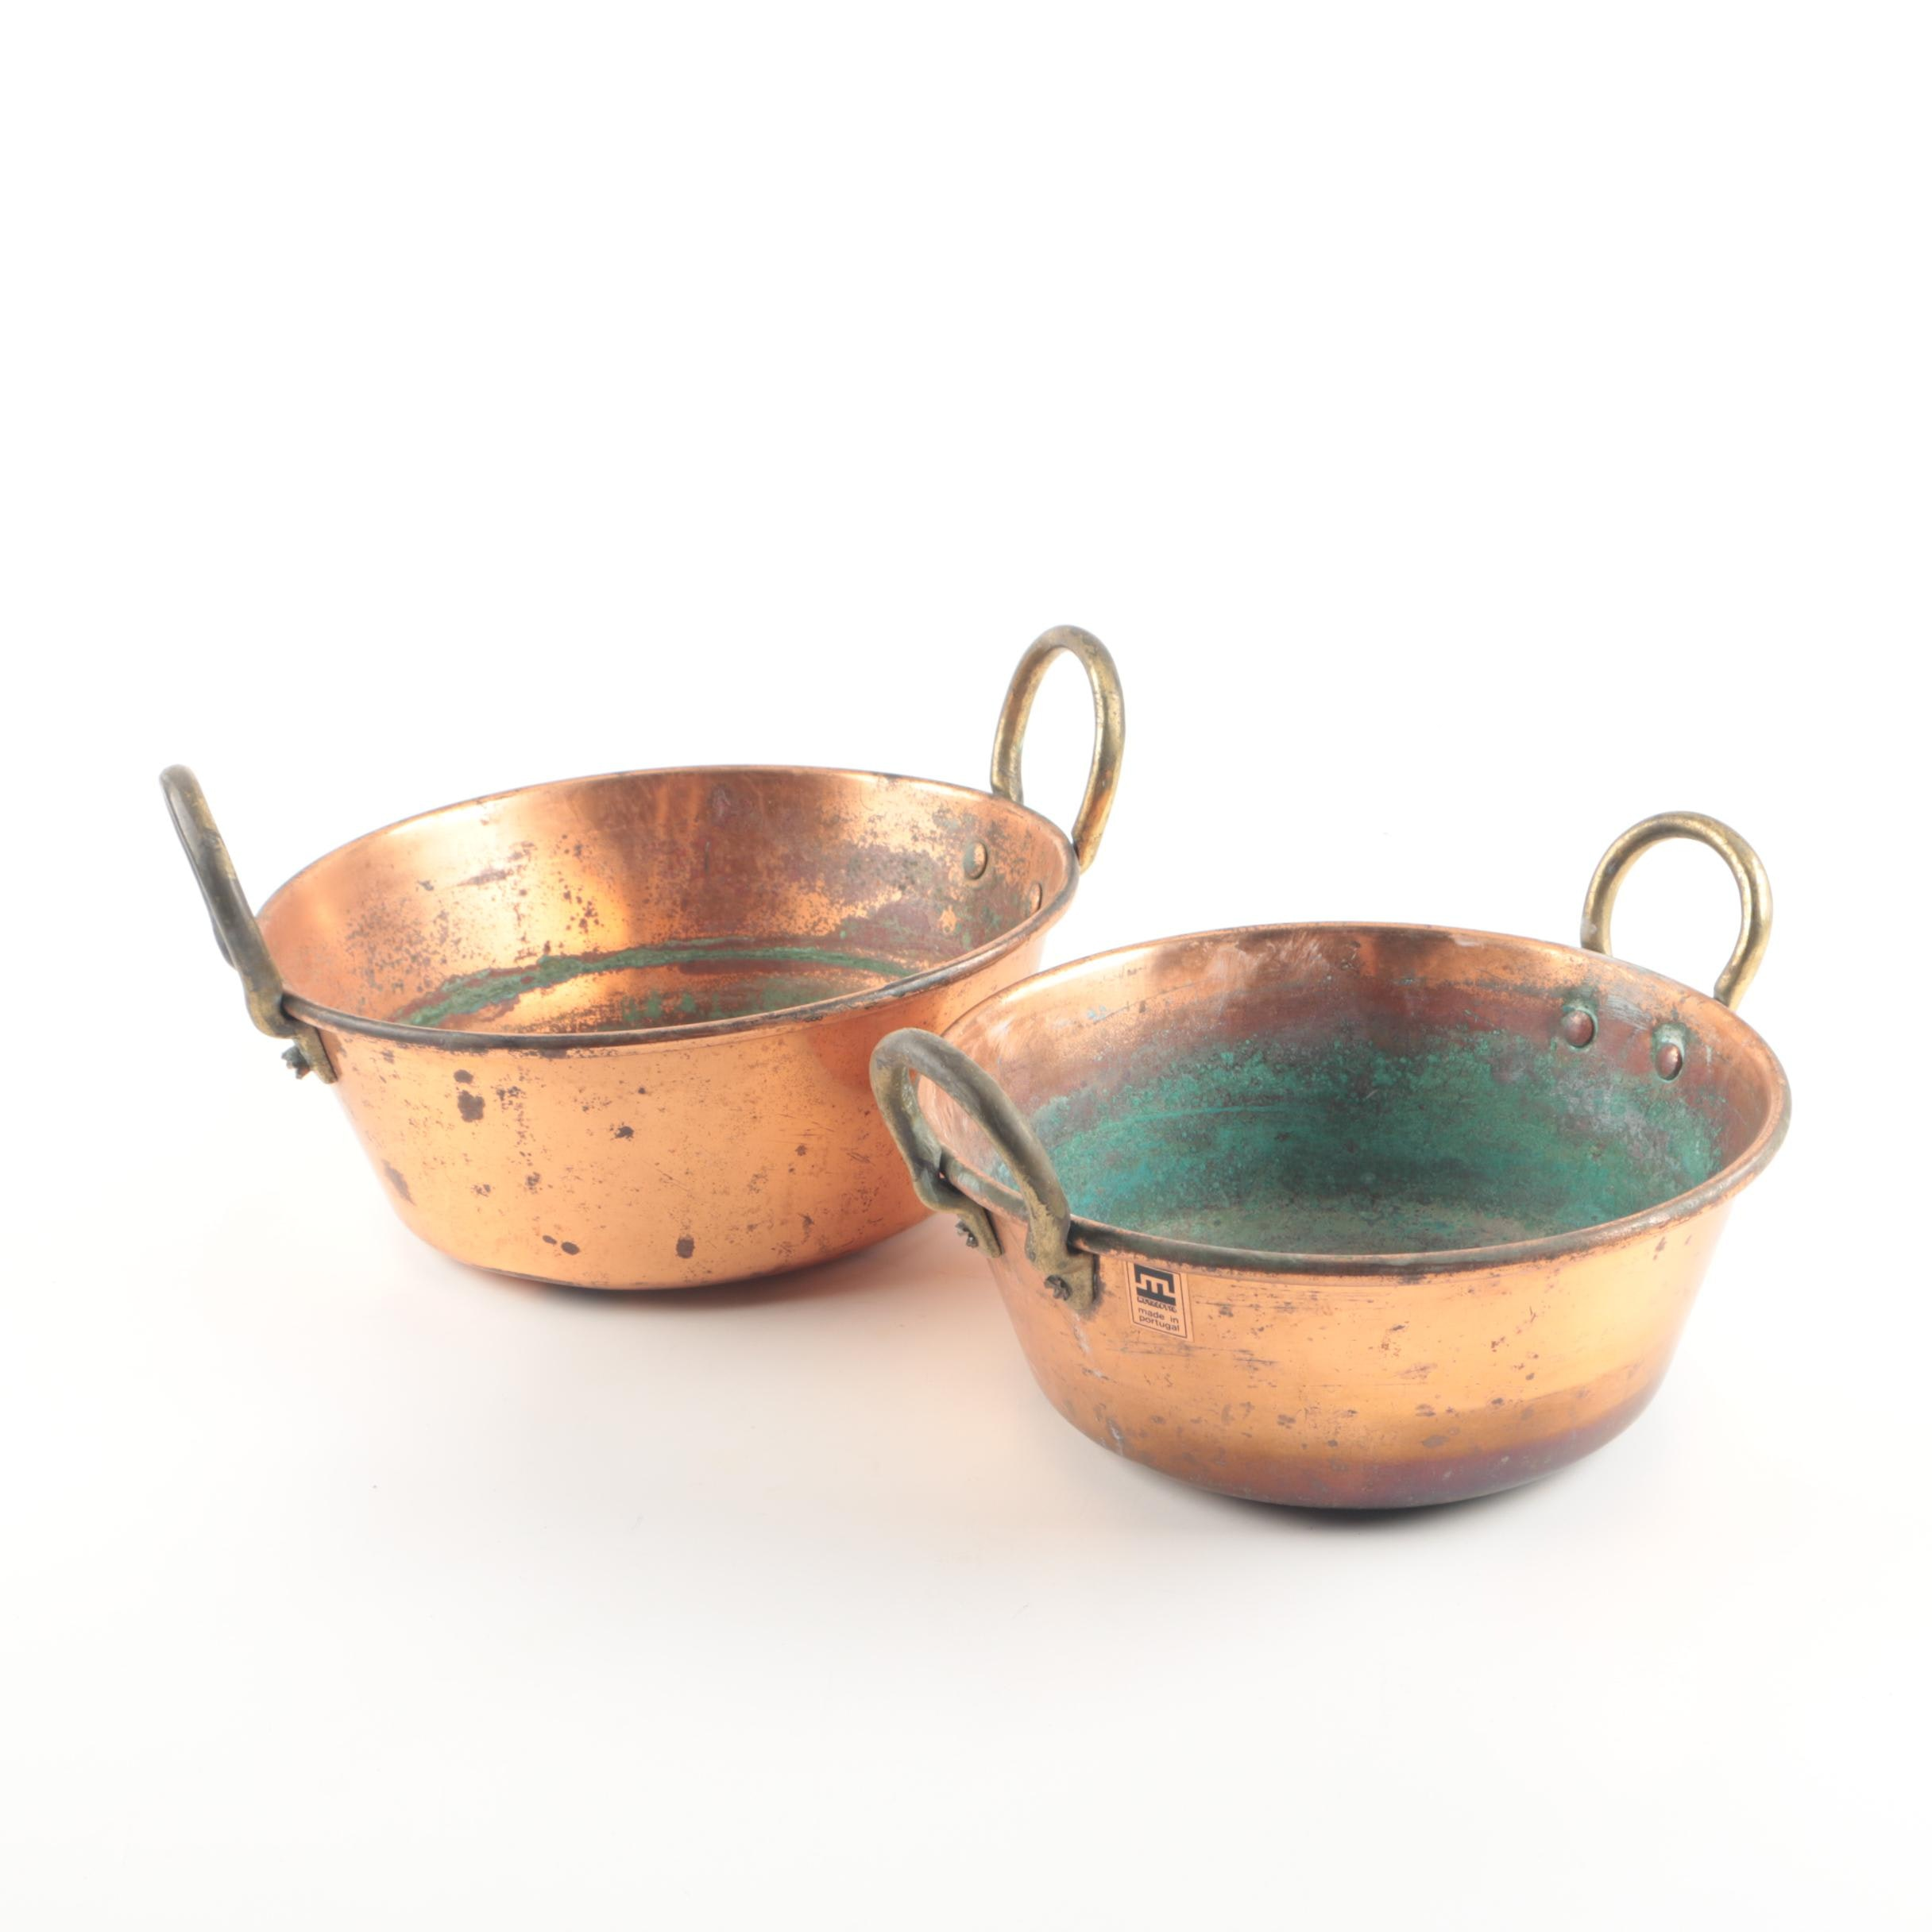 Metalutil  Portugese Copper Pans with Handles